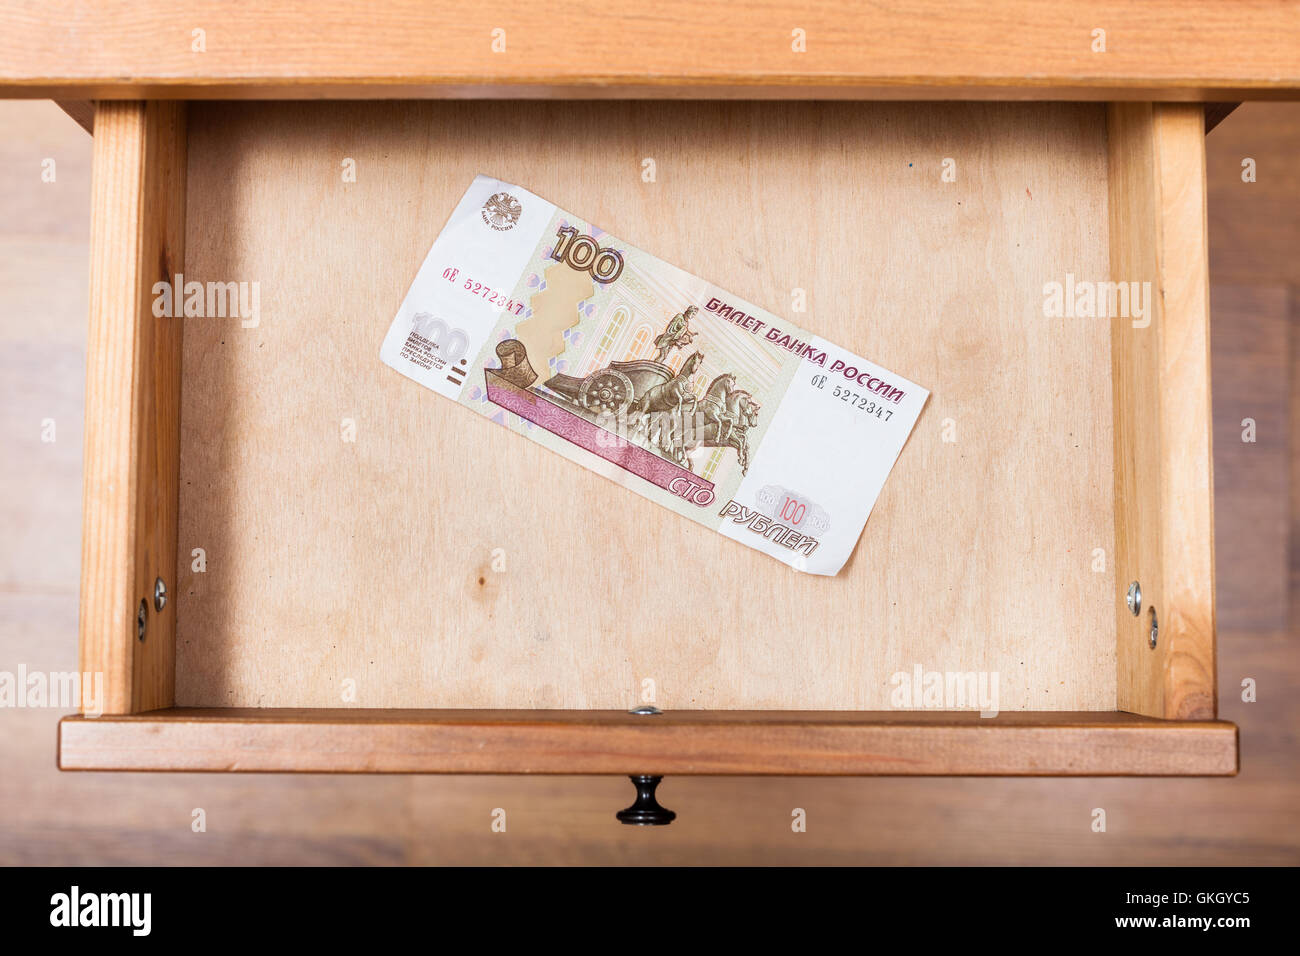 Top View Of One Hundred Russian Rubles Banknote In Open Drawer Of  Nightstand   Stock Image